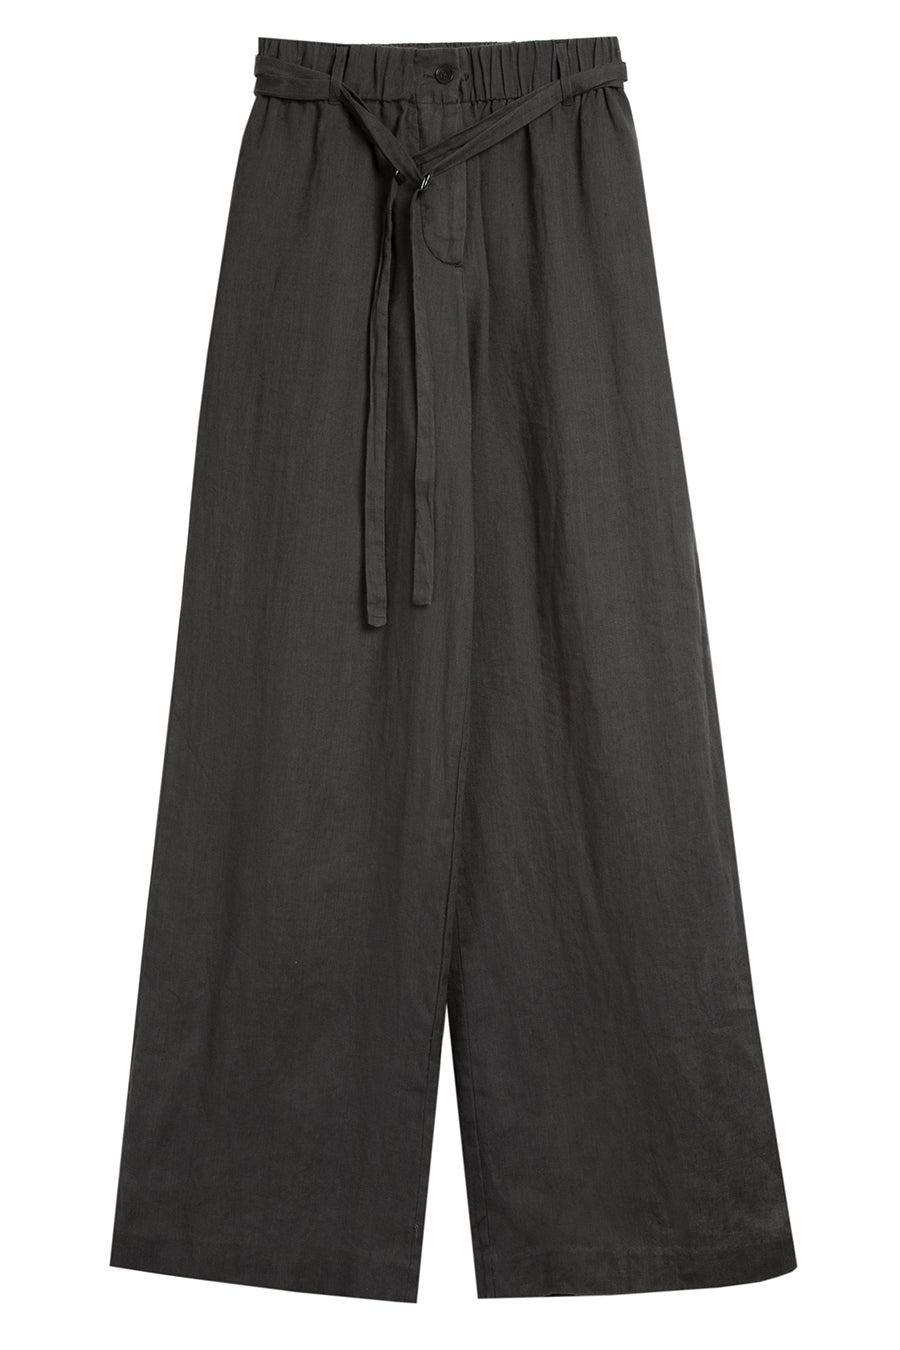 Chalk Linen Drawstring Trousers